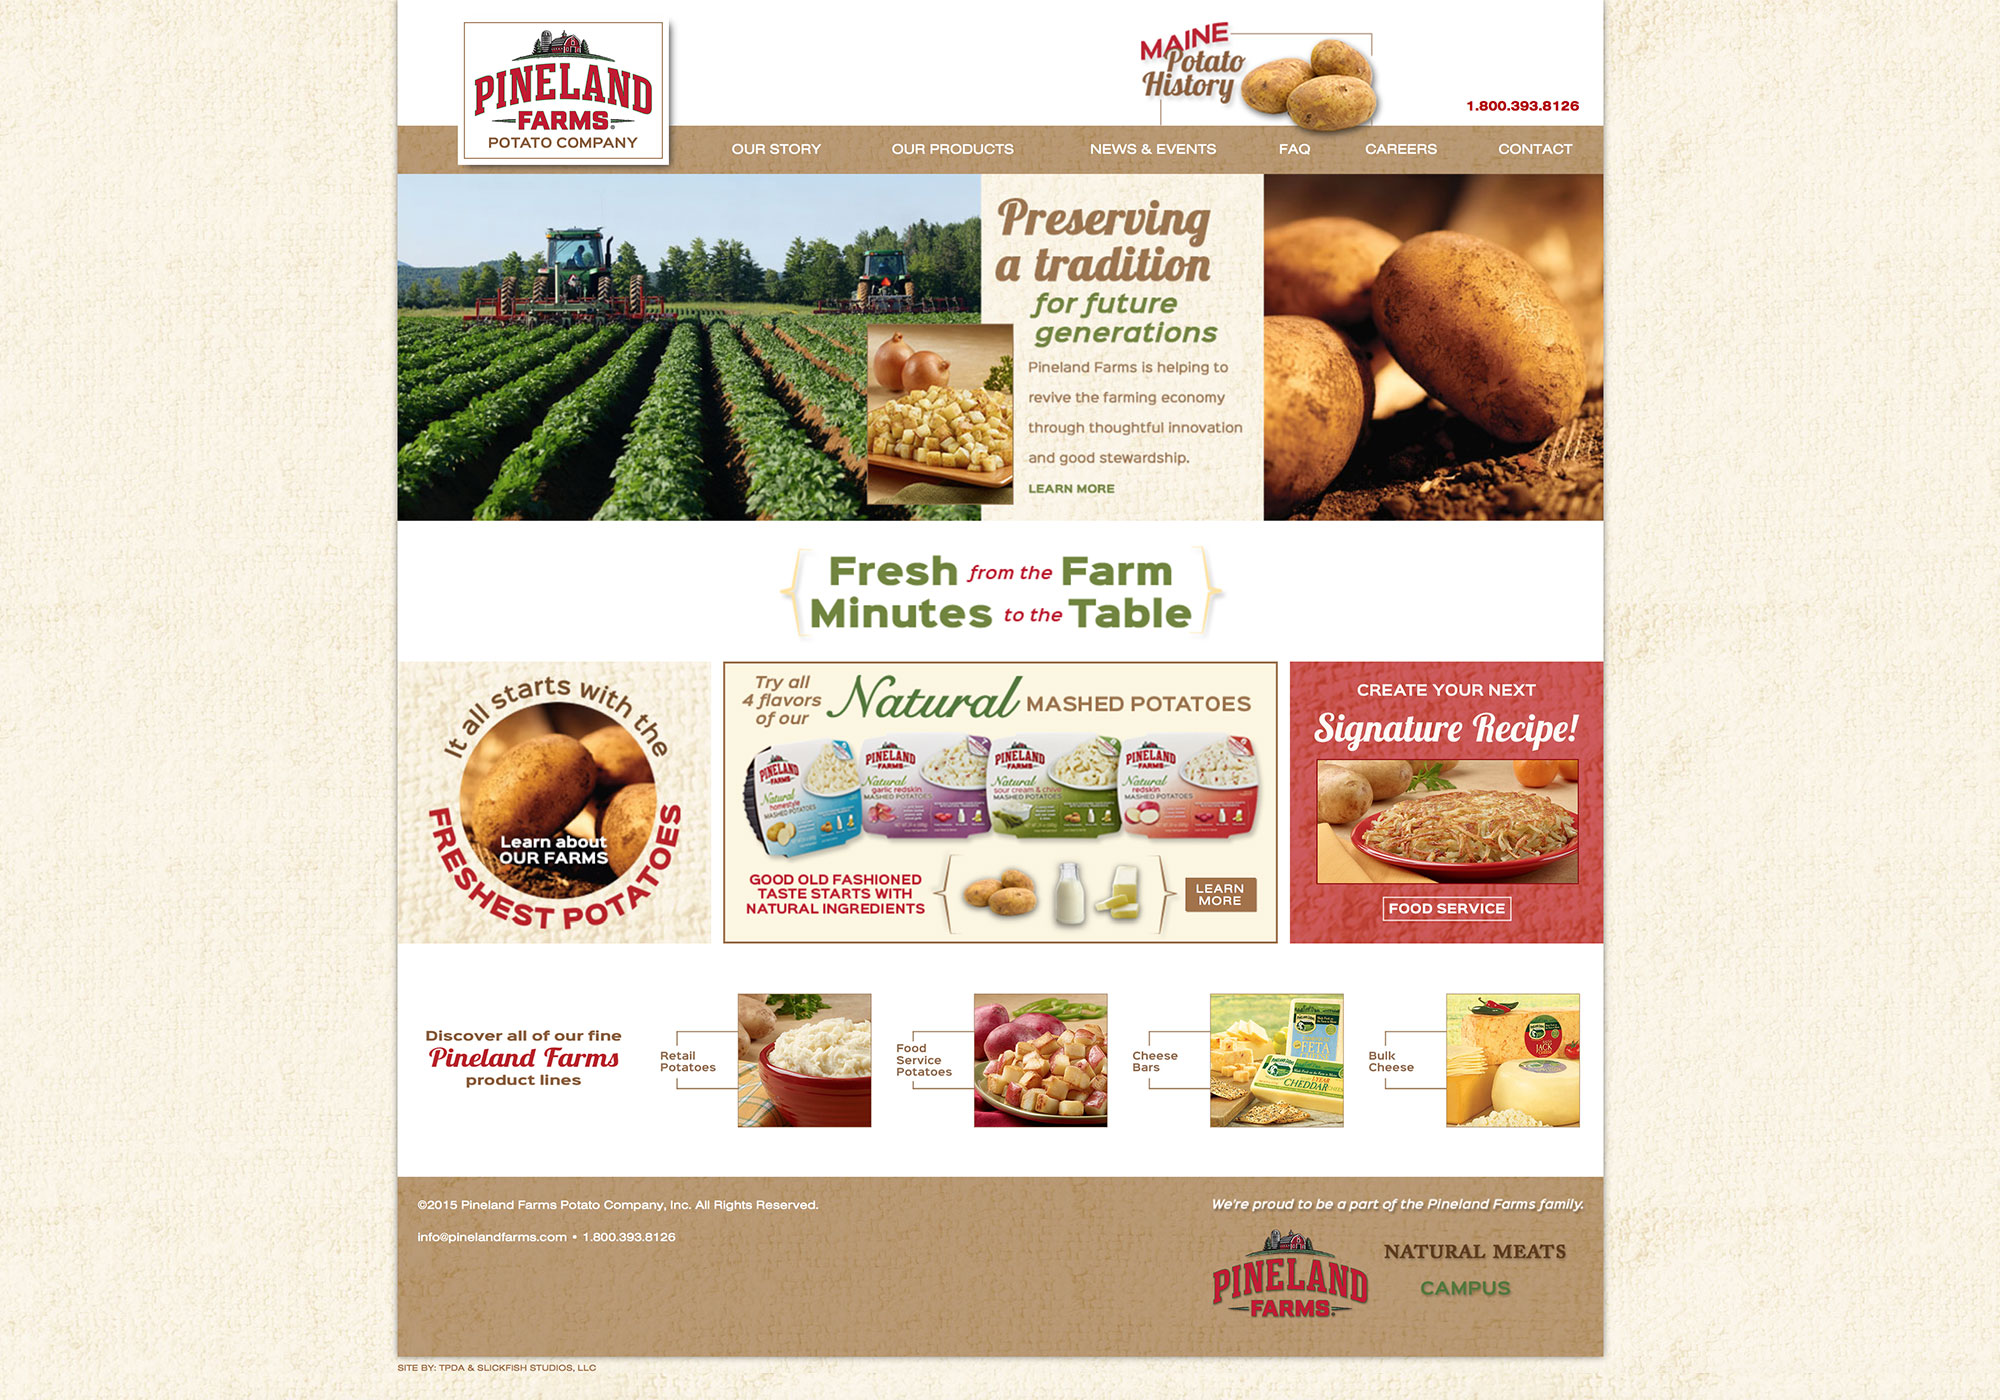 A screenshot of the homepage from the new SlickFish Studios designed website for Pineland Potatoes.